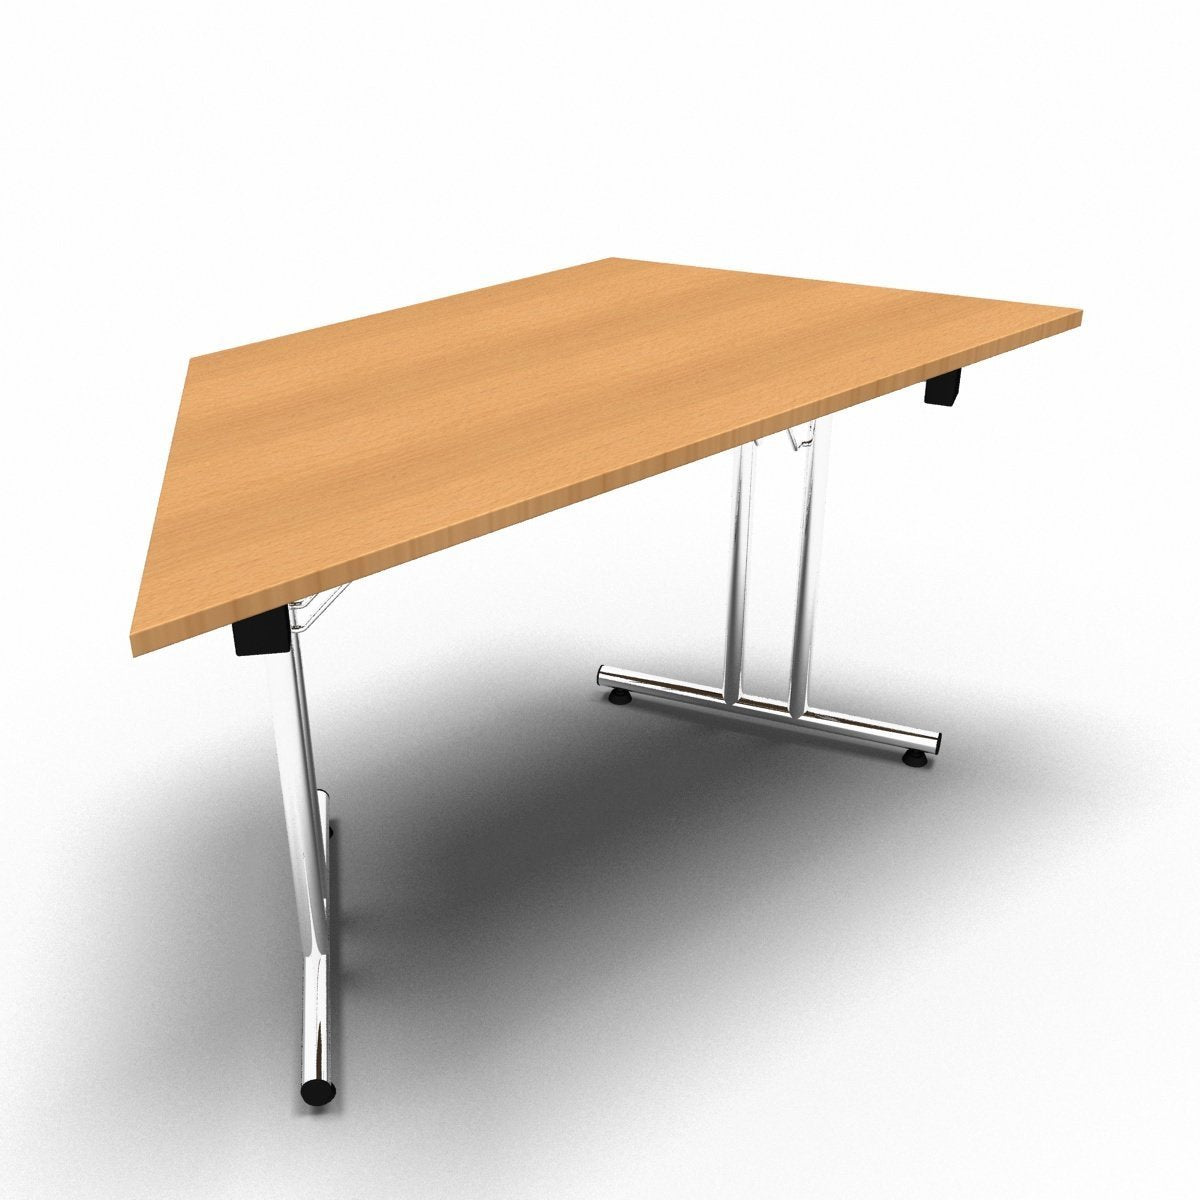 Table 1400 x 700 x 730mm / Trapezoidal / Beech Synergy Folding Tables